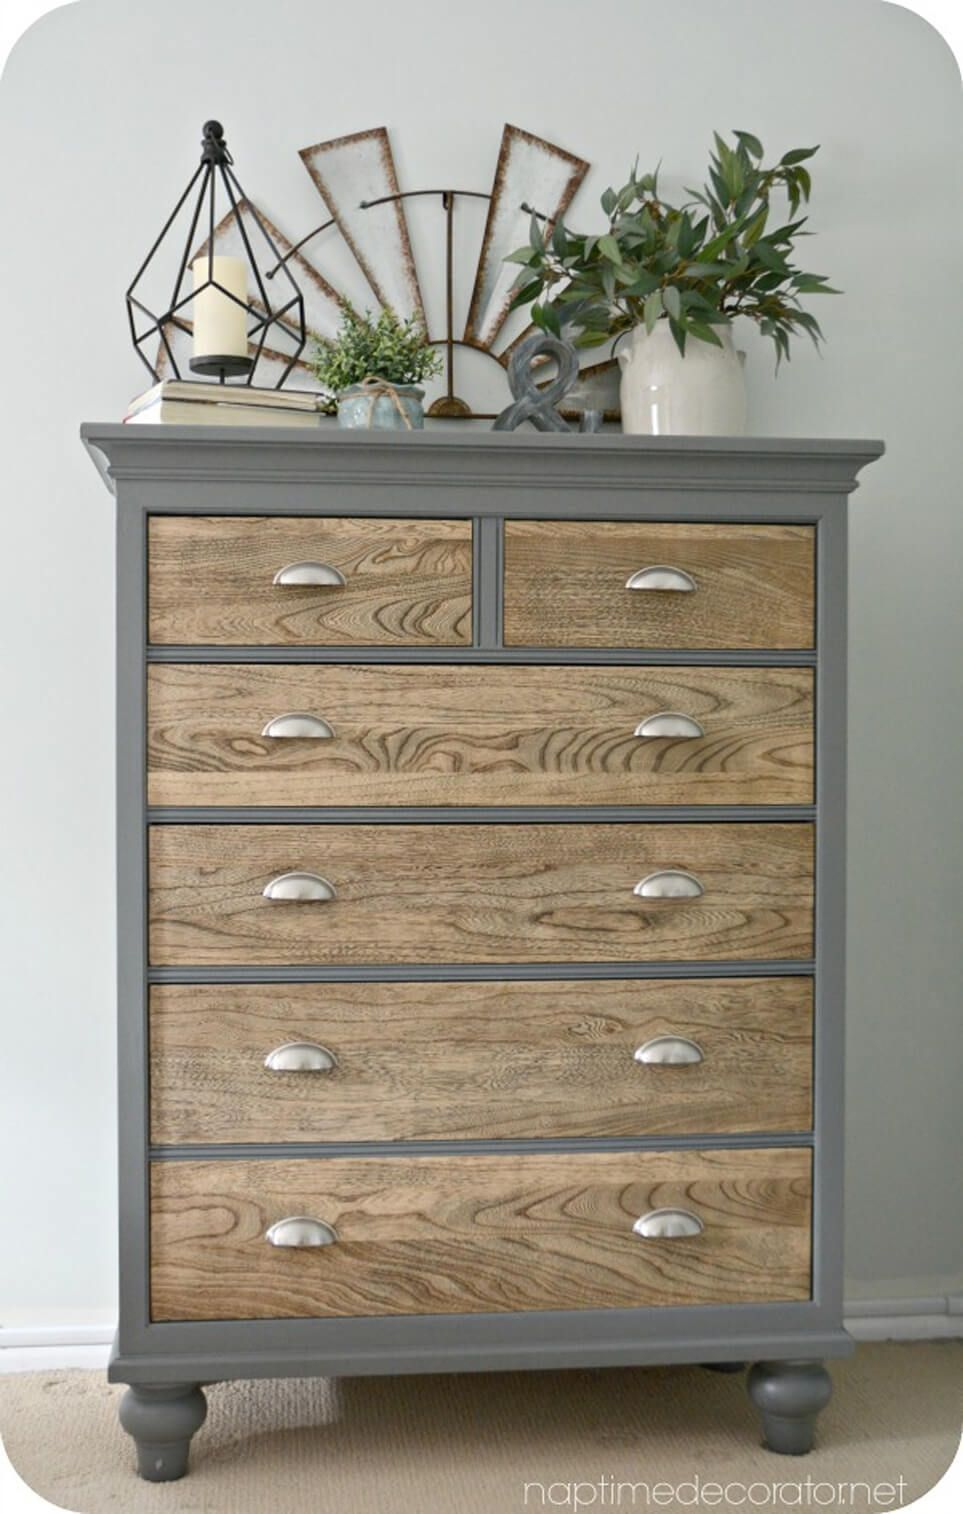 39 Diy Rustic Home Decor Ideas You Can Make Yourself  Cabin Delectable Bedroom Chest Of Drawers Design Inspiration